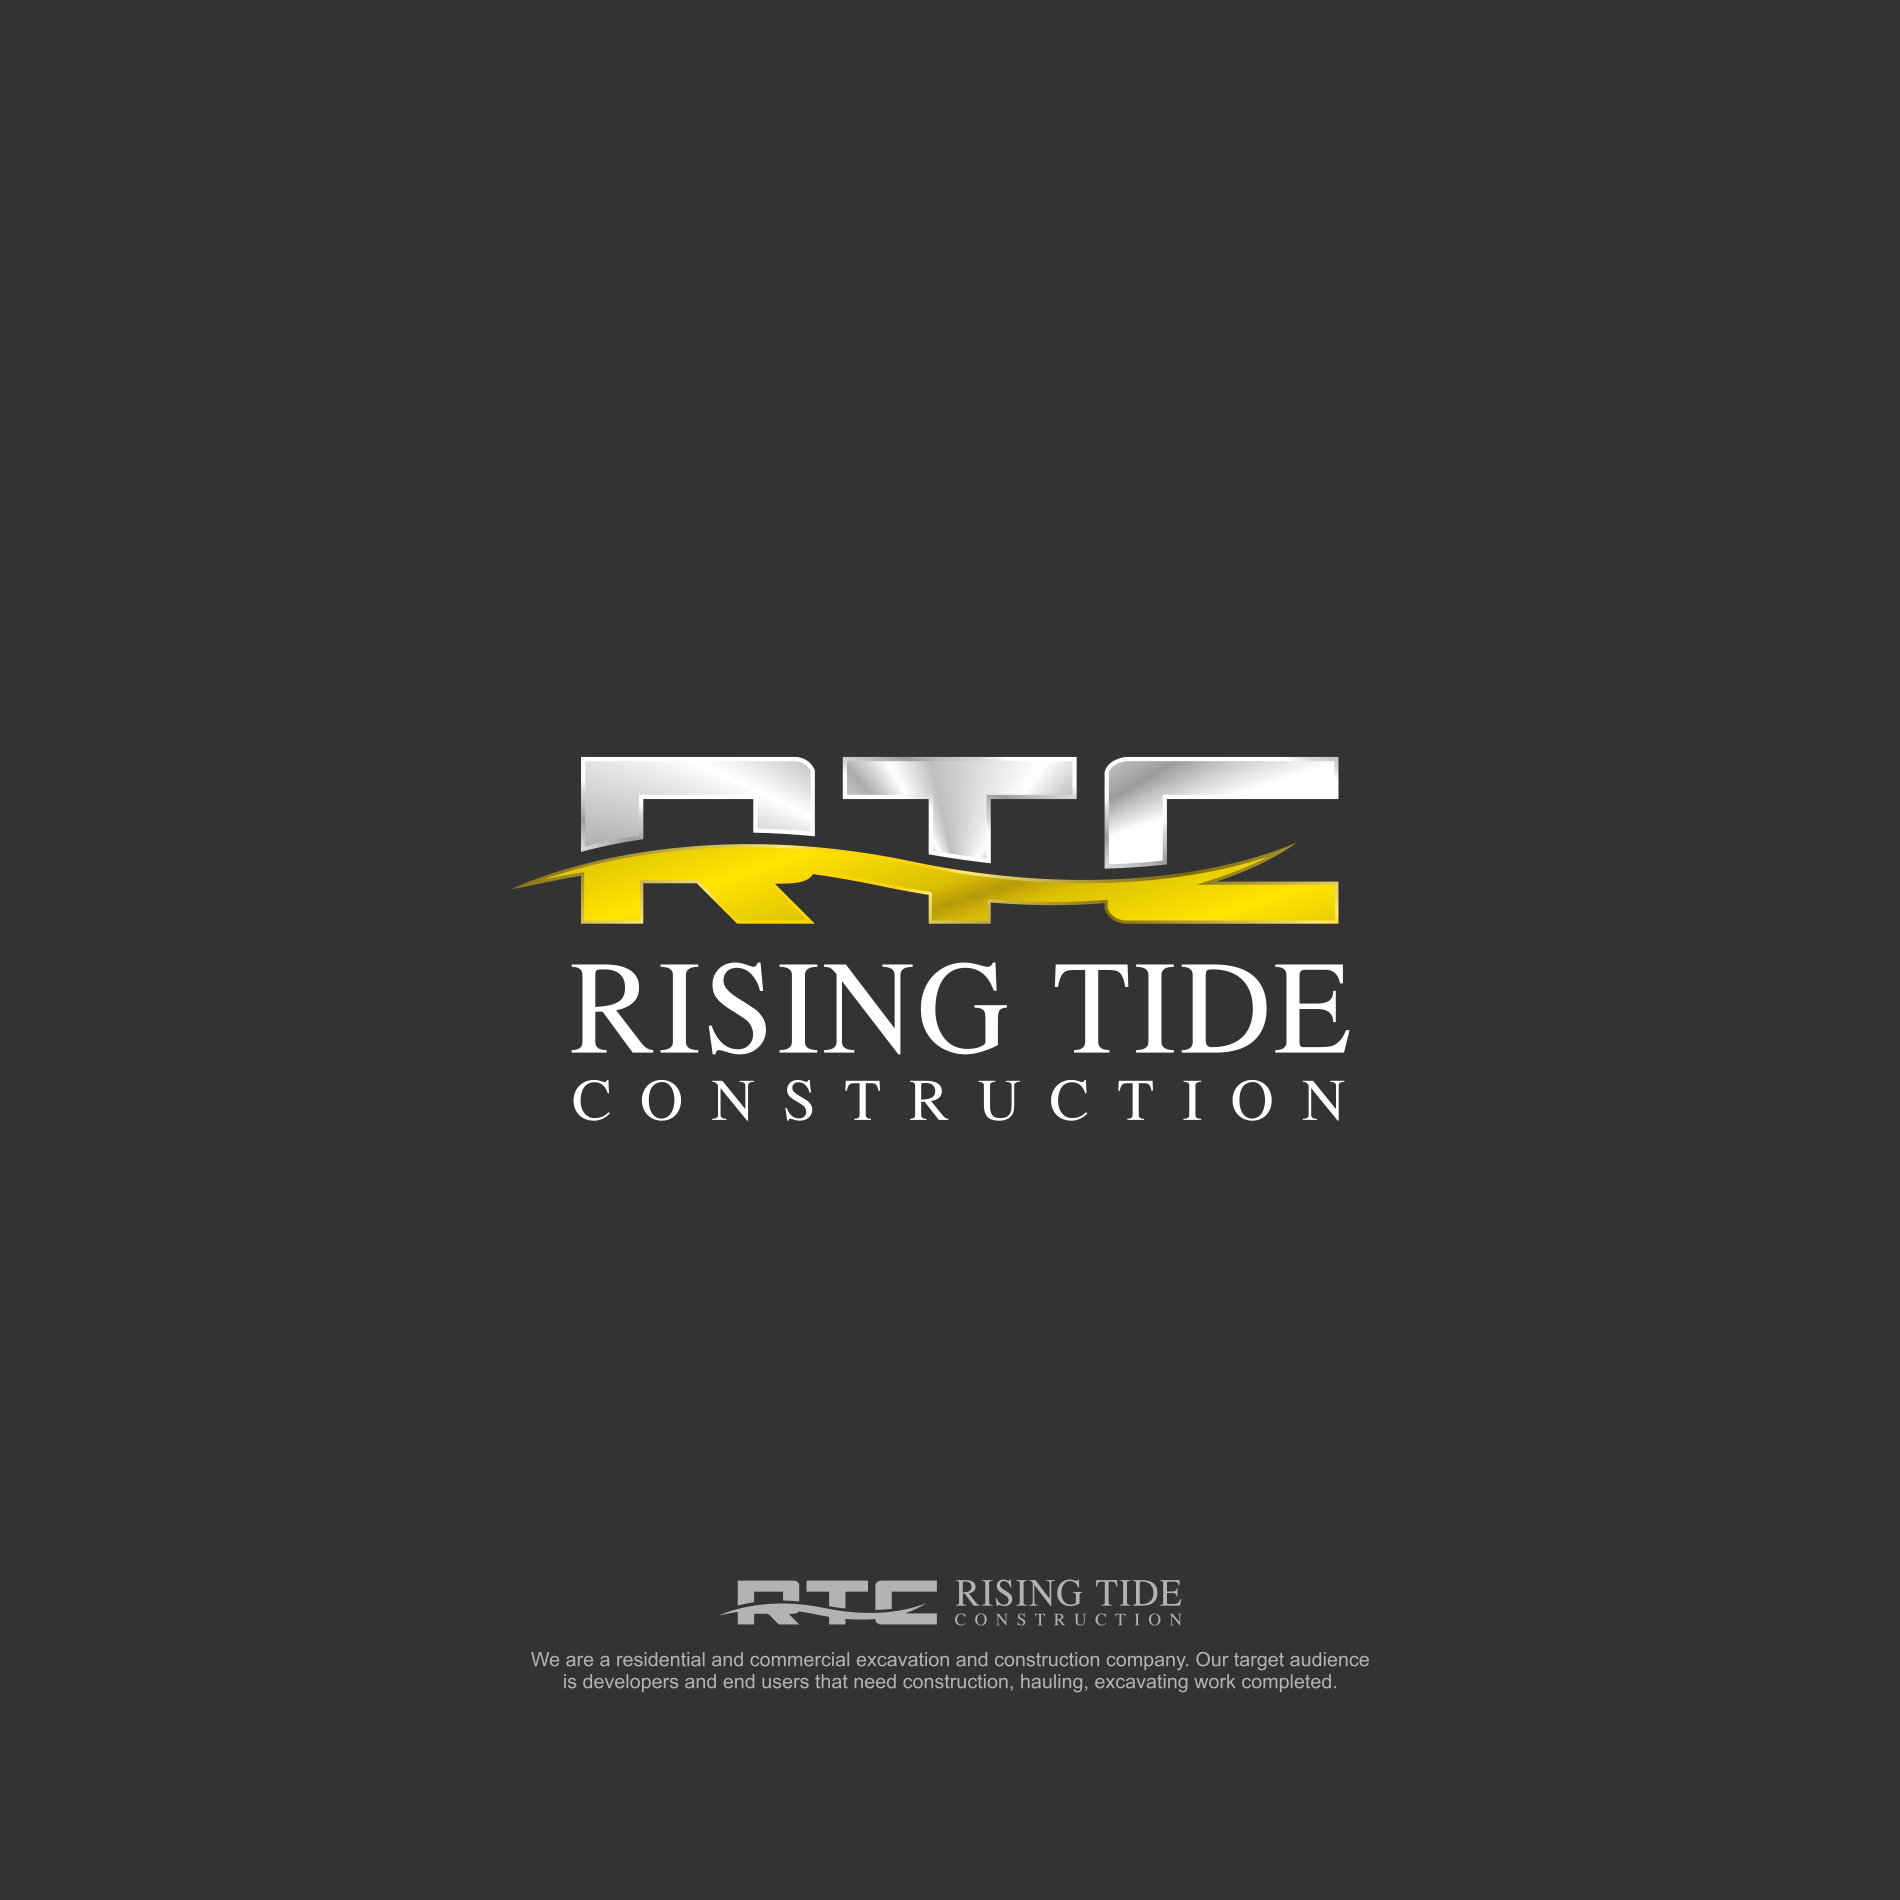 New Construction/Excavating company needs awesome logo! RISING TIDE CONSTRUCTION